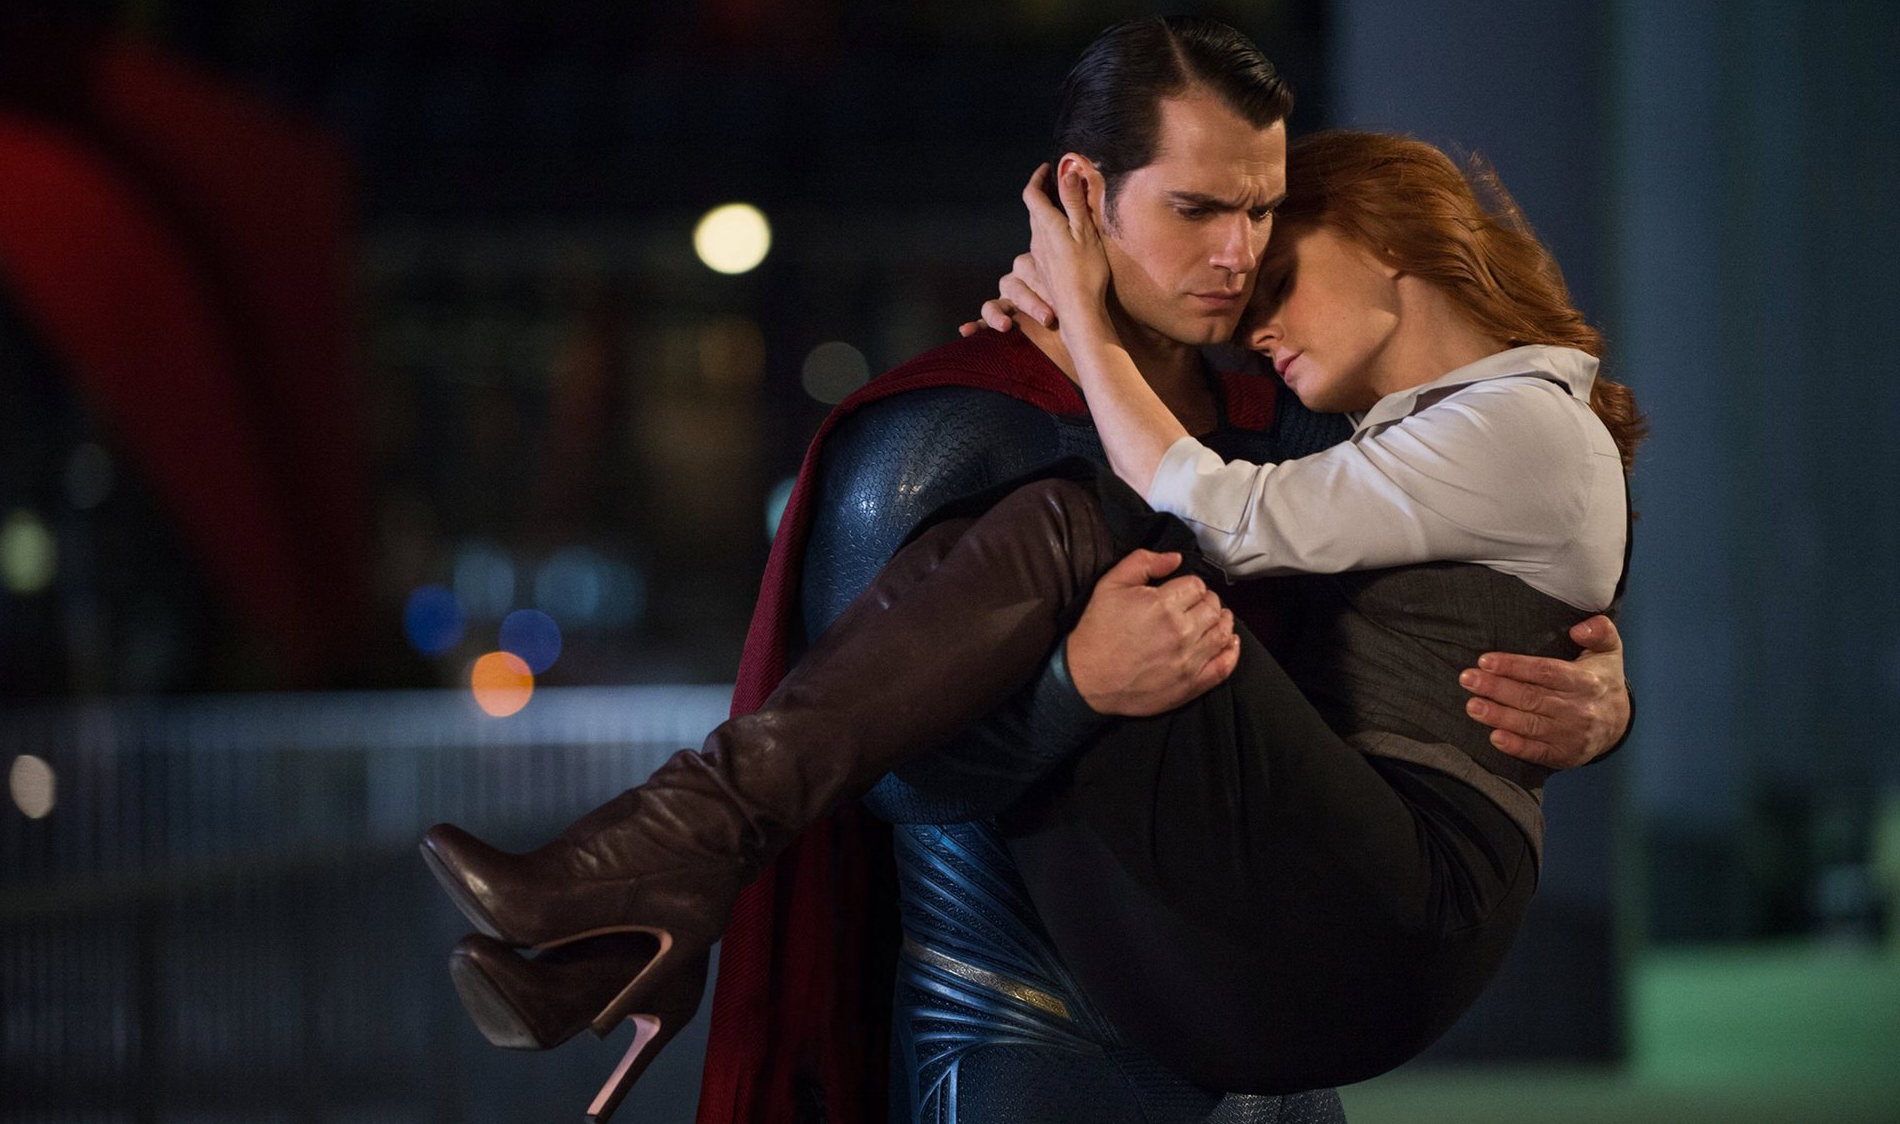 Forget Lyft, Lois. Superman will give you actual lifts whenever you need anything in this film.